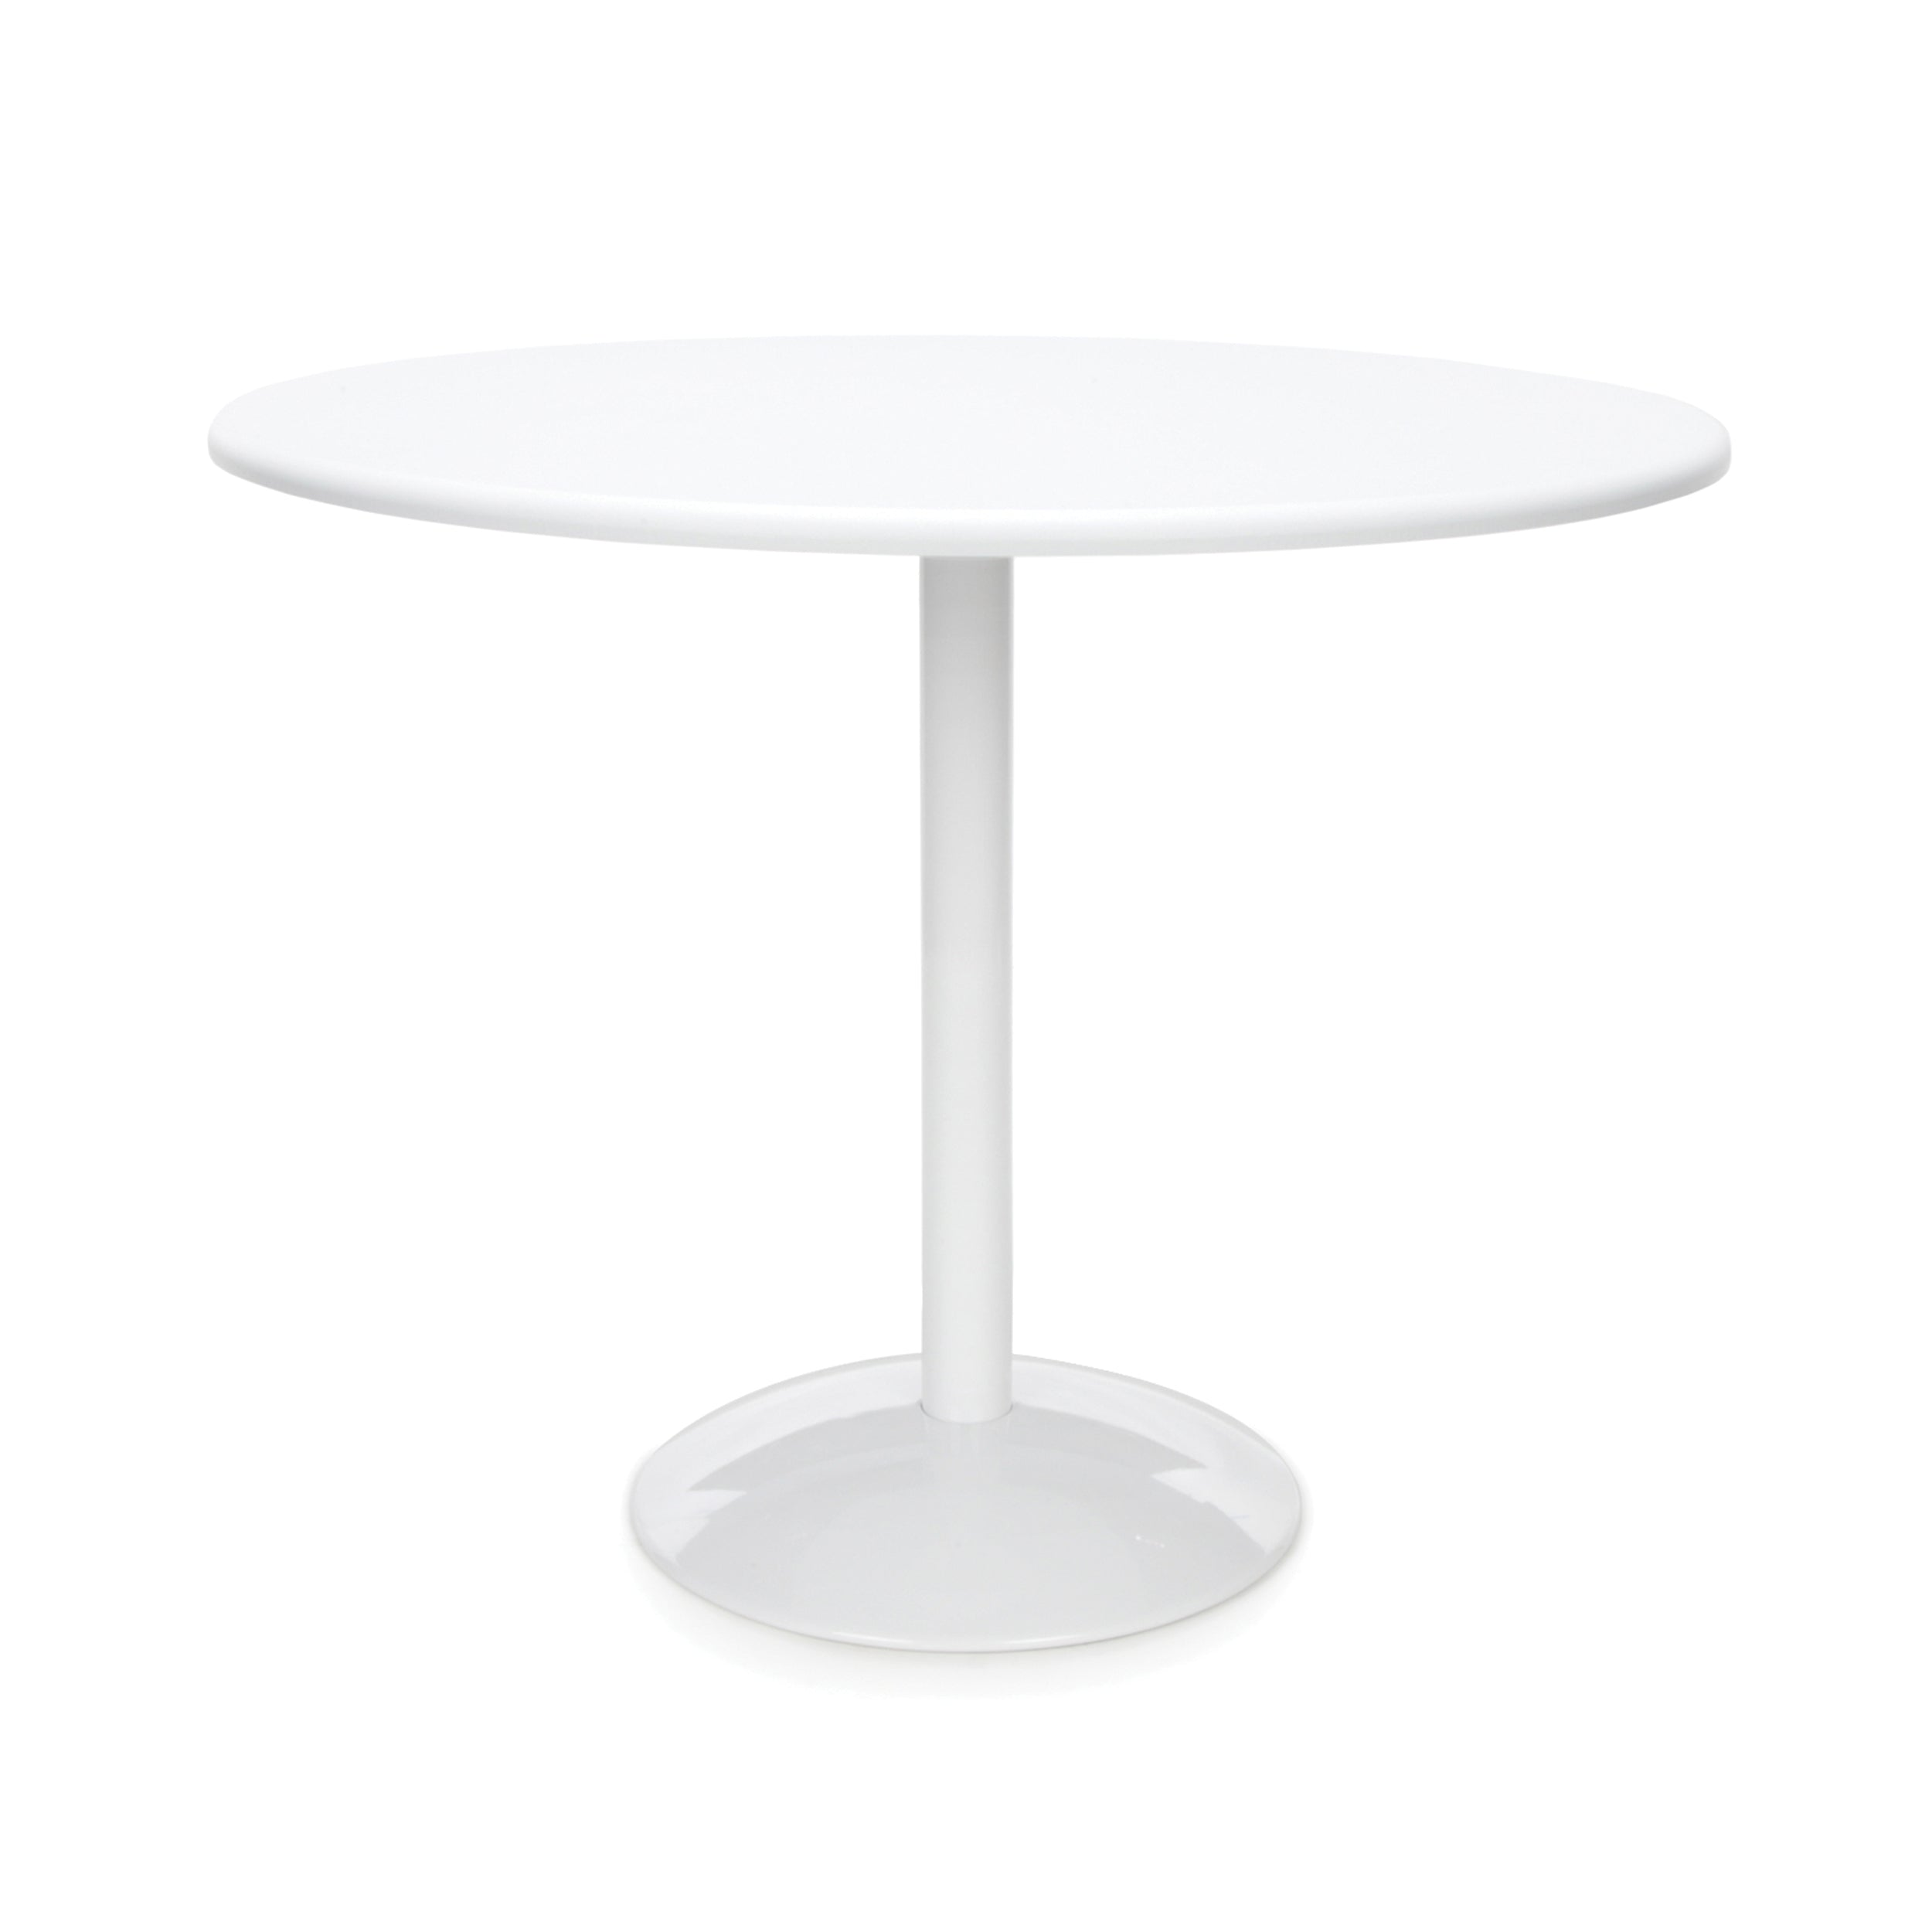 Ofminc Model OT36RD Orbit Series 36 Inch Round Table